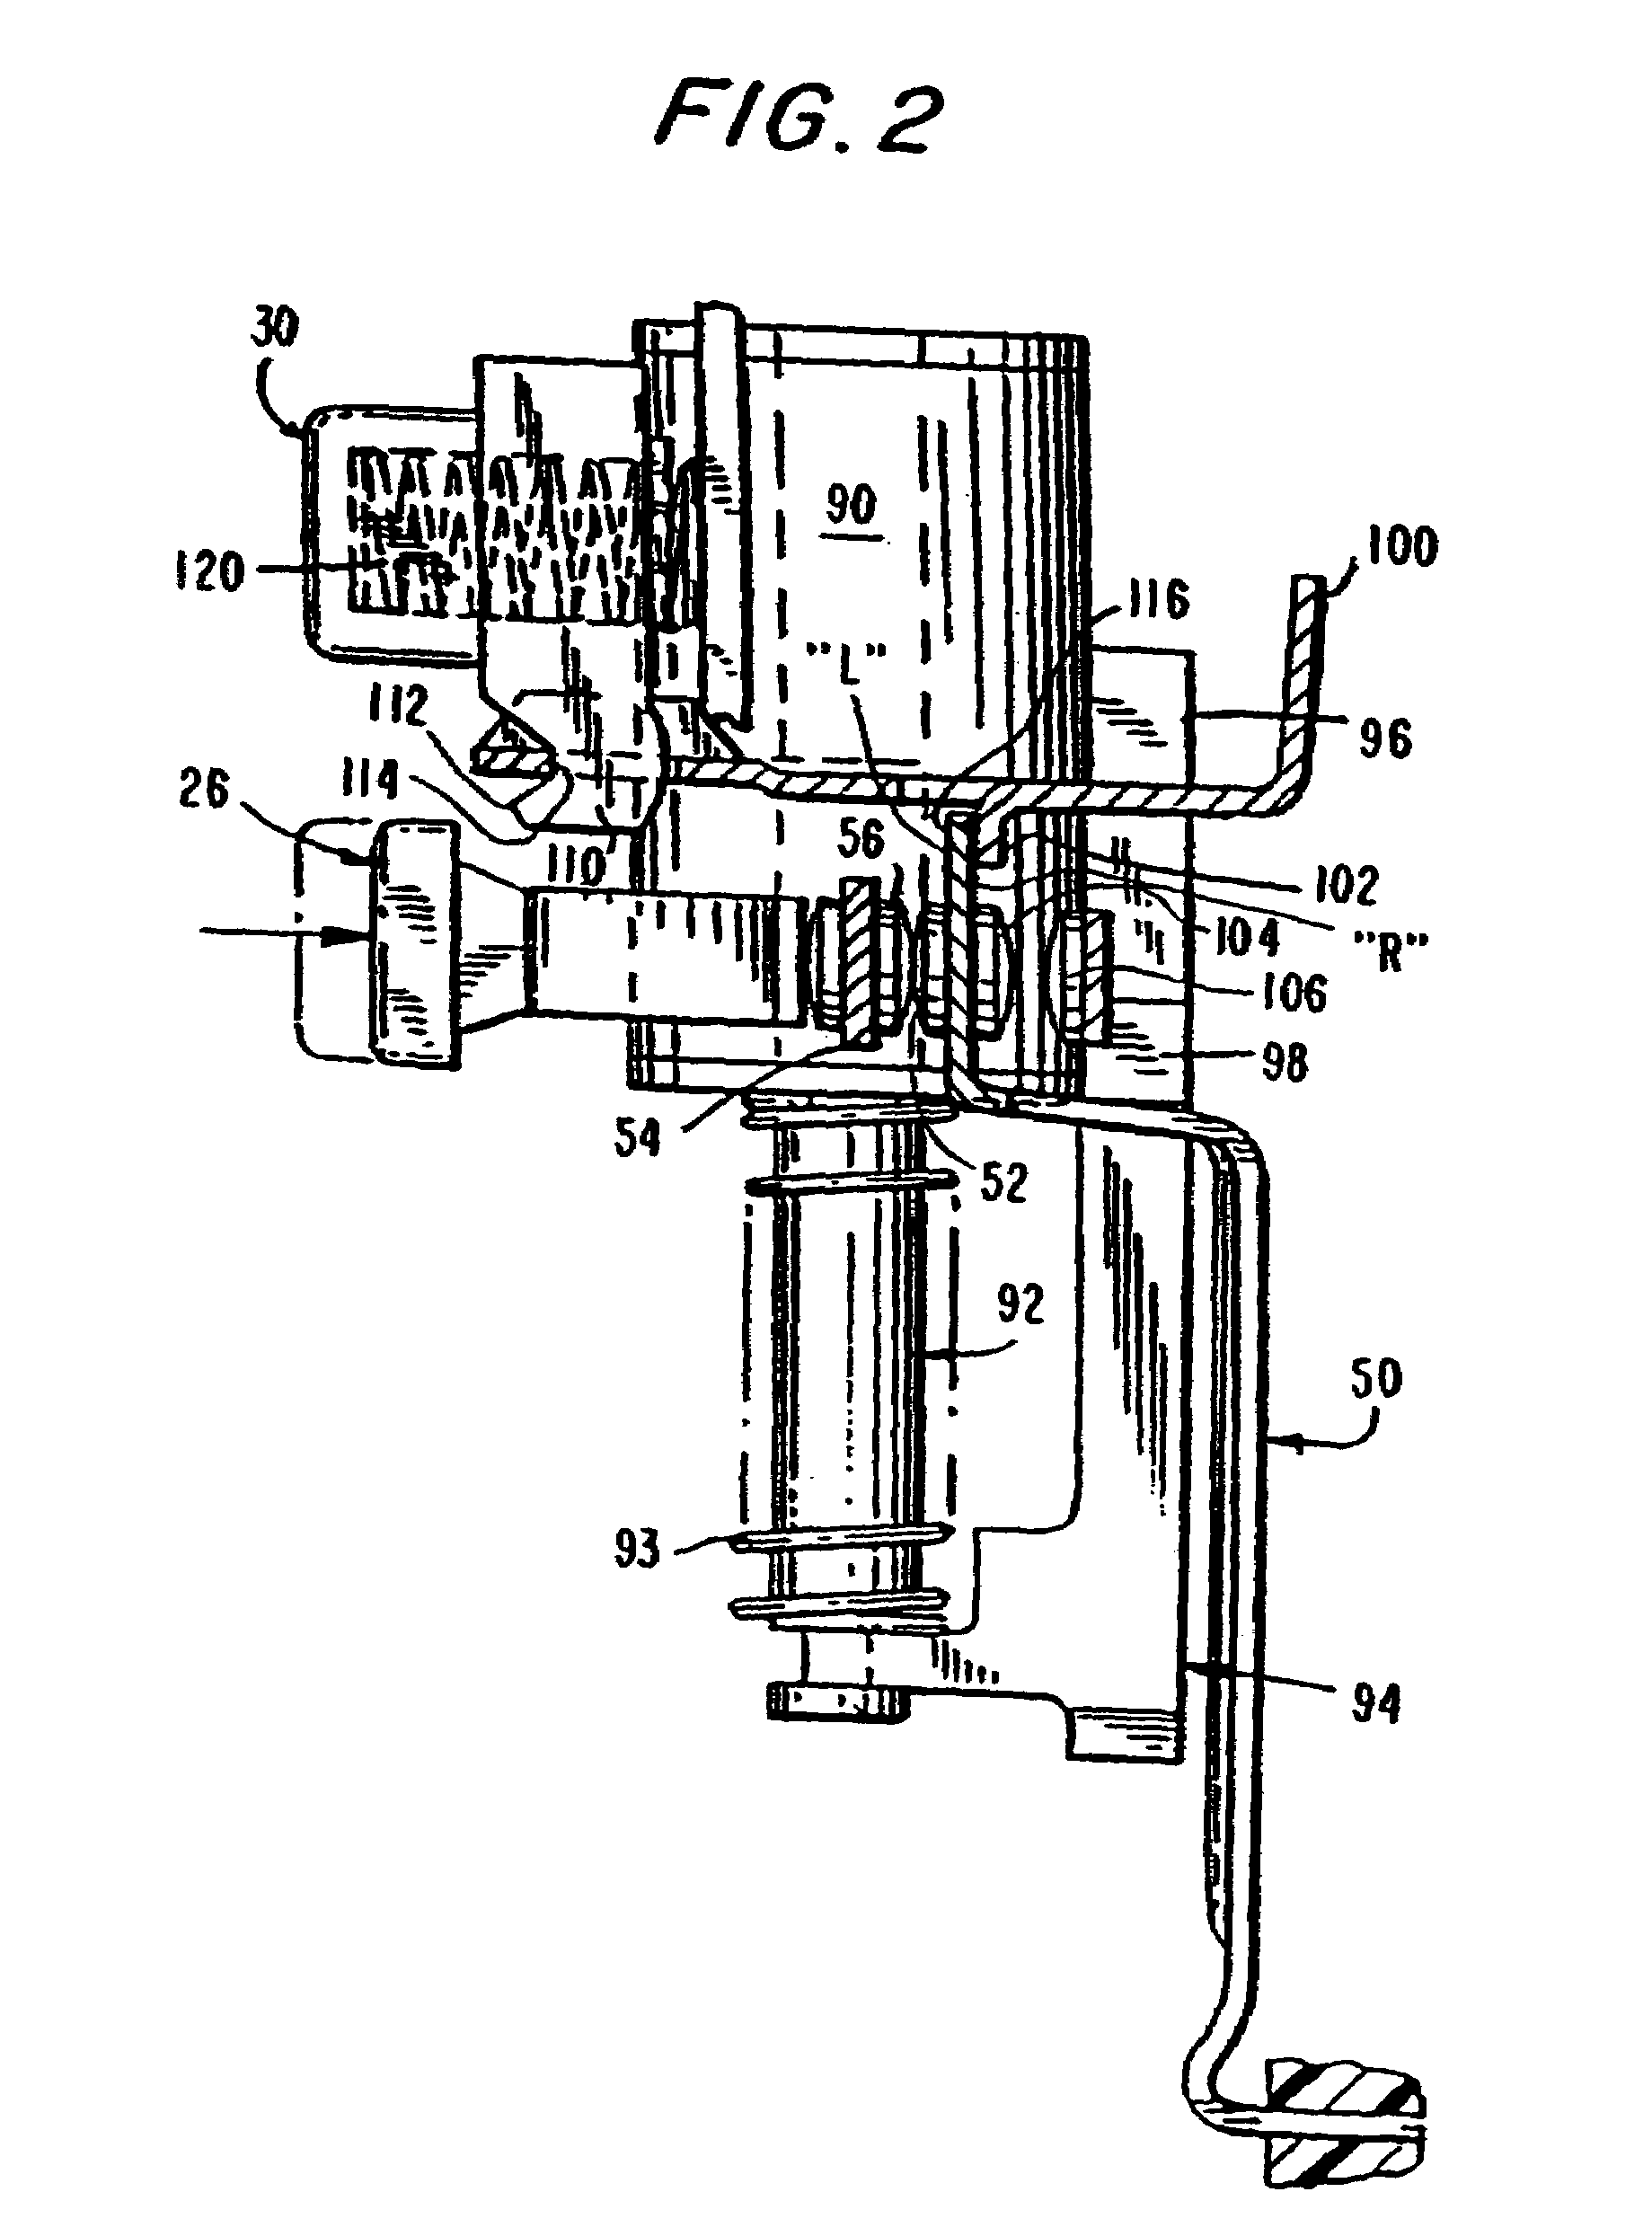 Patent Us7463124 Circuit Interrupting Device With Reverse Wiring 2 Gang Recepitacle Youtube Drawing